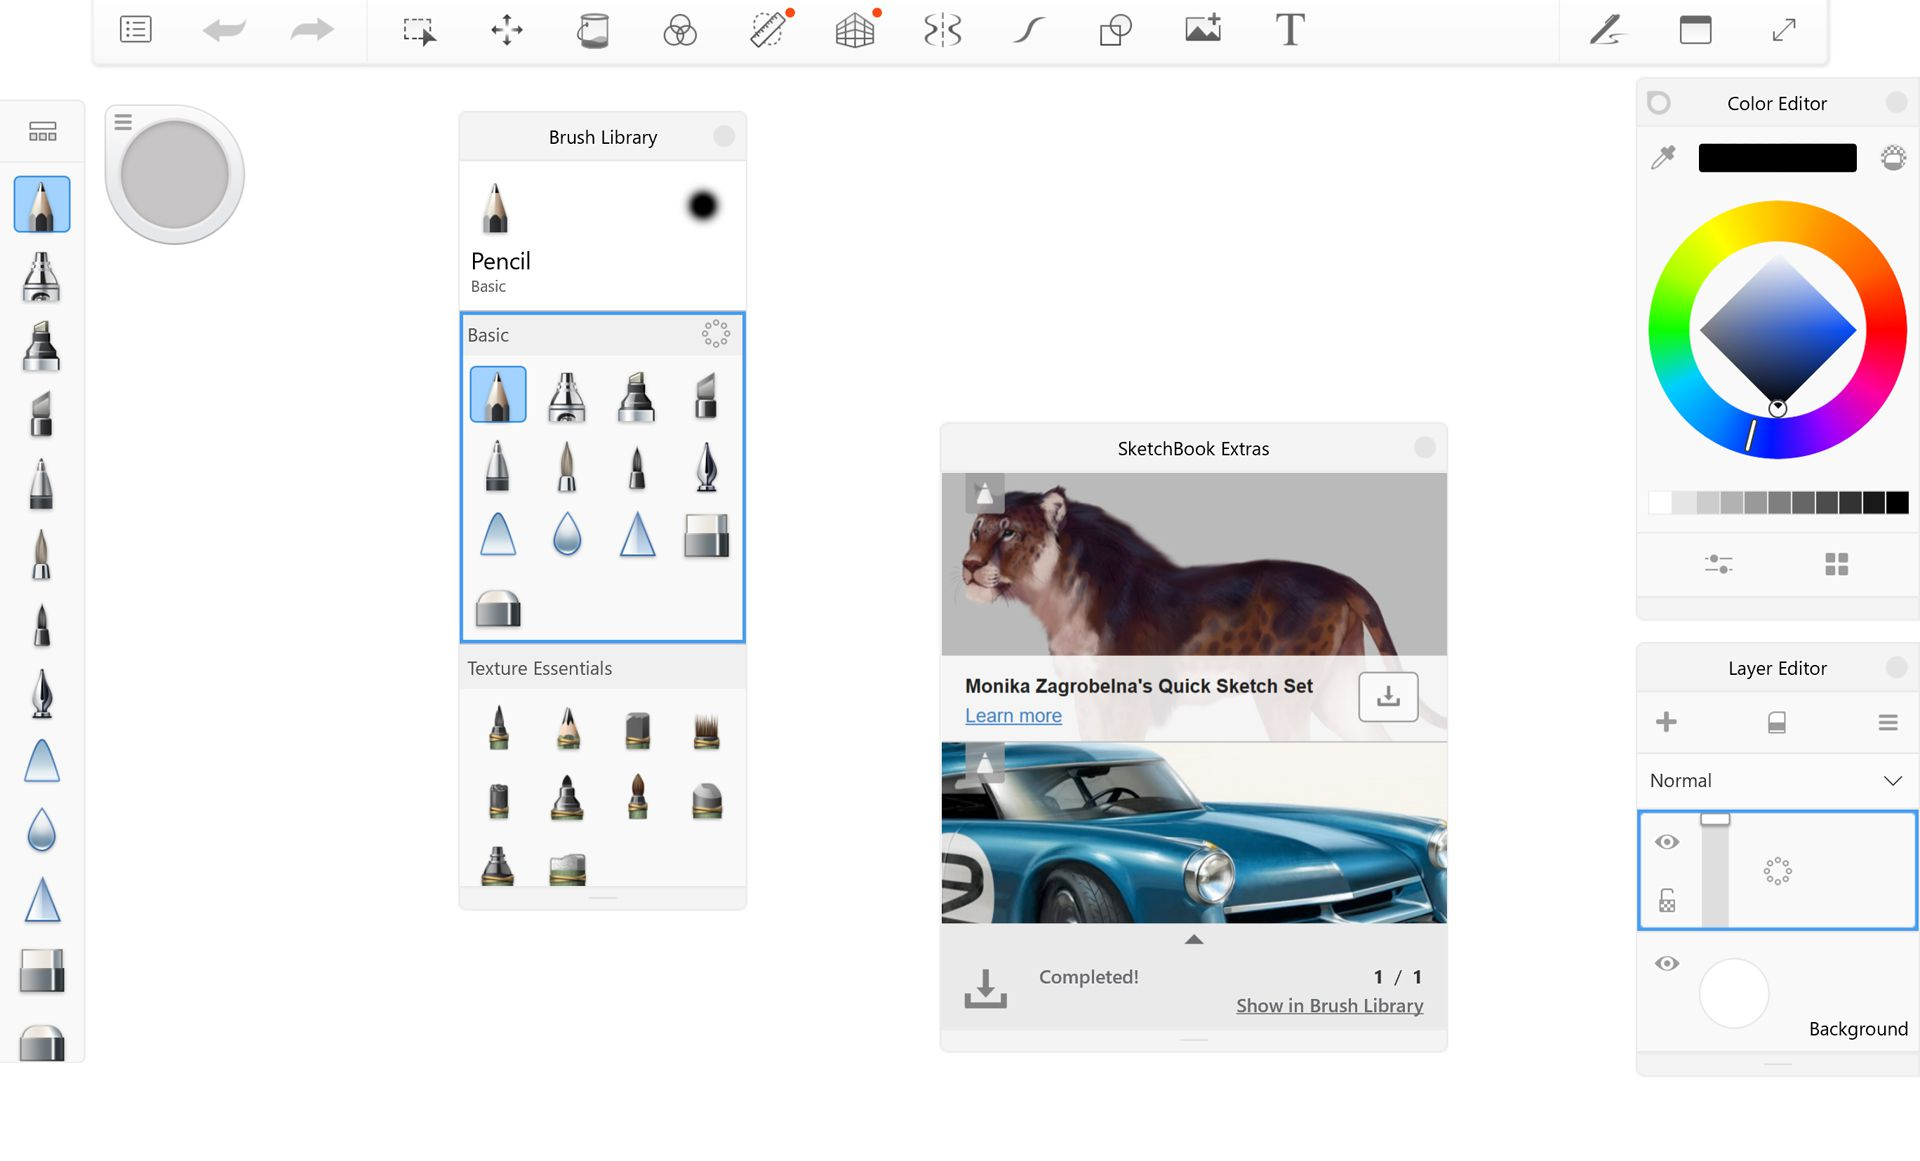 Autodesk Sketchbook drawing Windows app for Surface Pro.